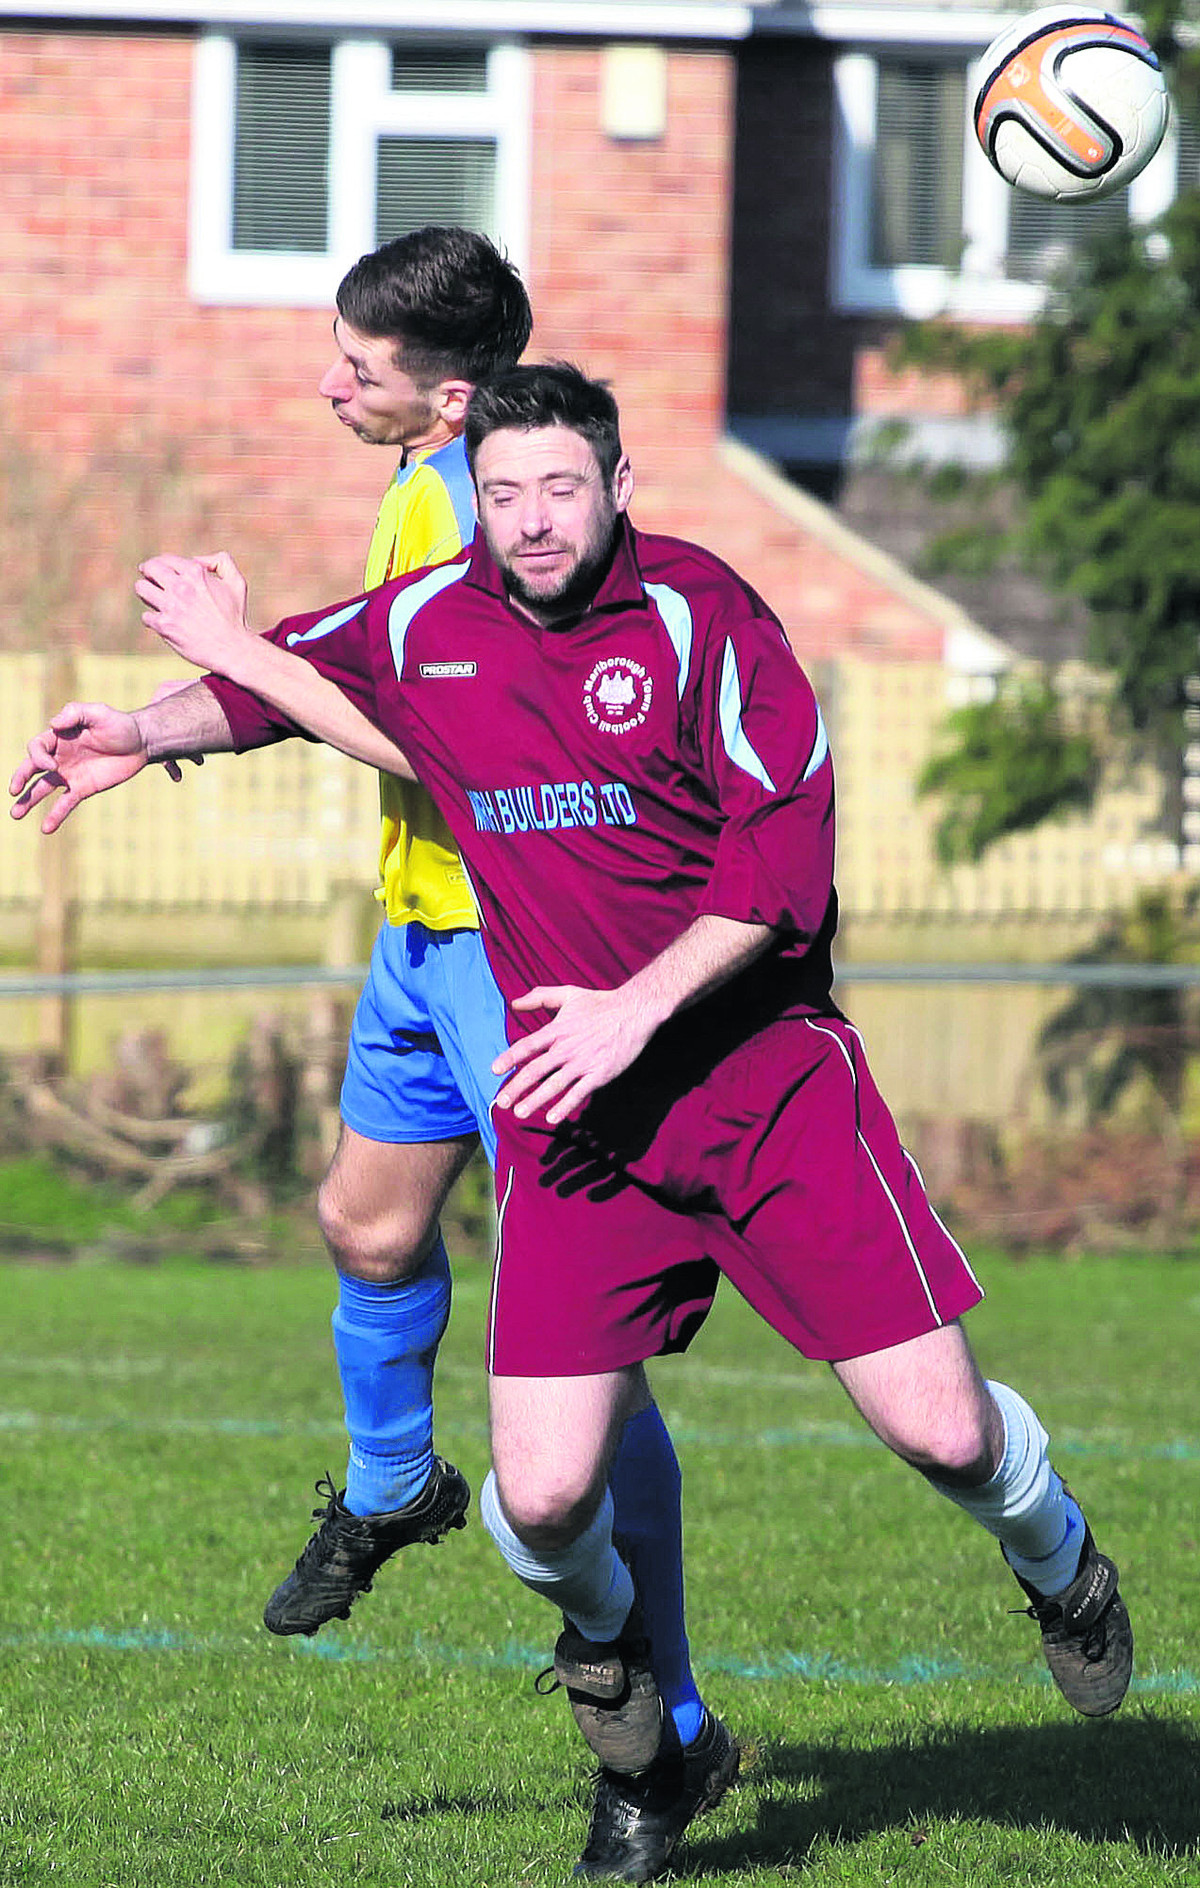 Marlborough Town's Leigh Blanchard (burgundy) challenges Corsham Town Reserves' Josh Batstone in the air during Saturday's Wiltshire League Premier Division clash